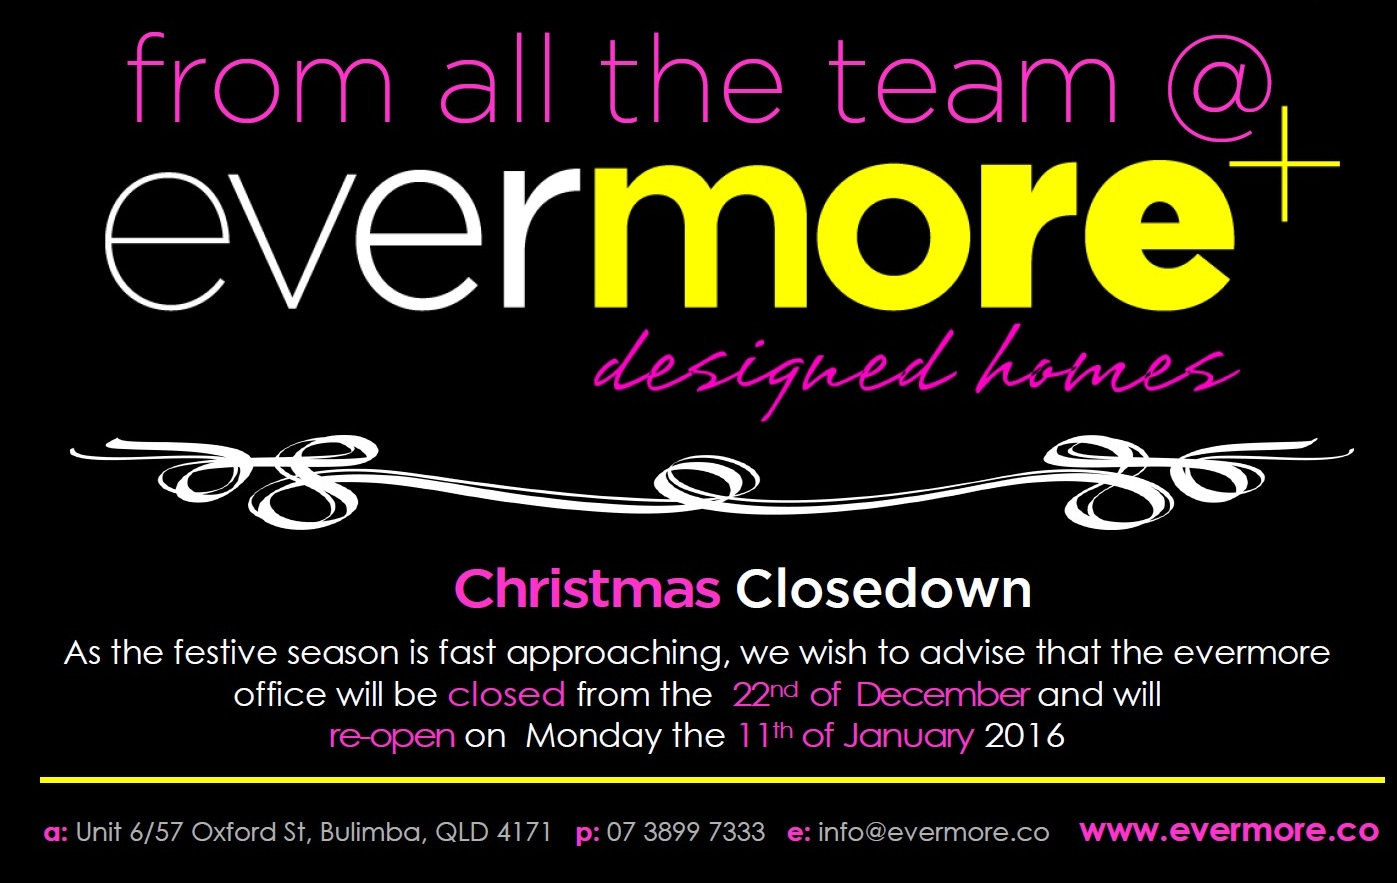 more+ joy to you this Christmas closedown